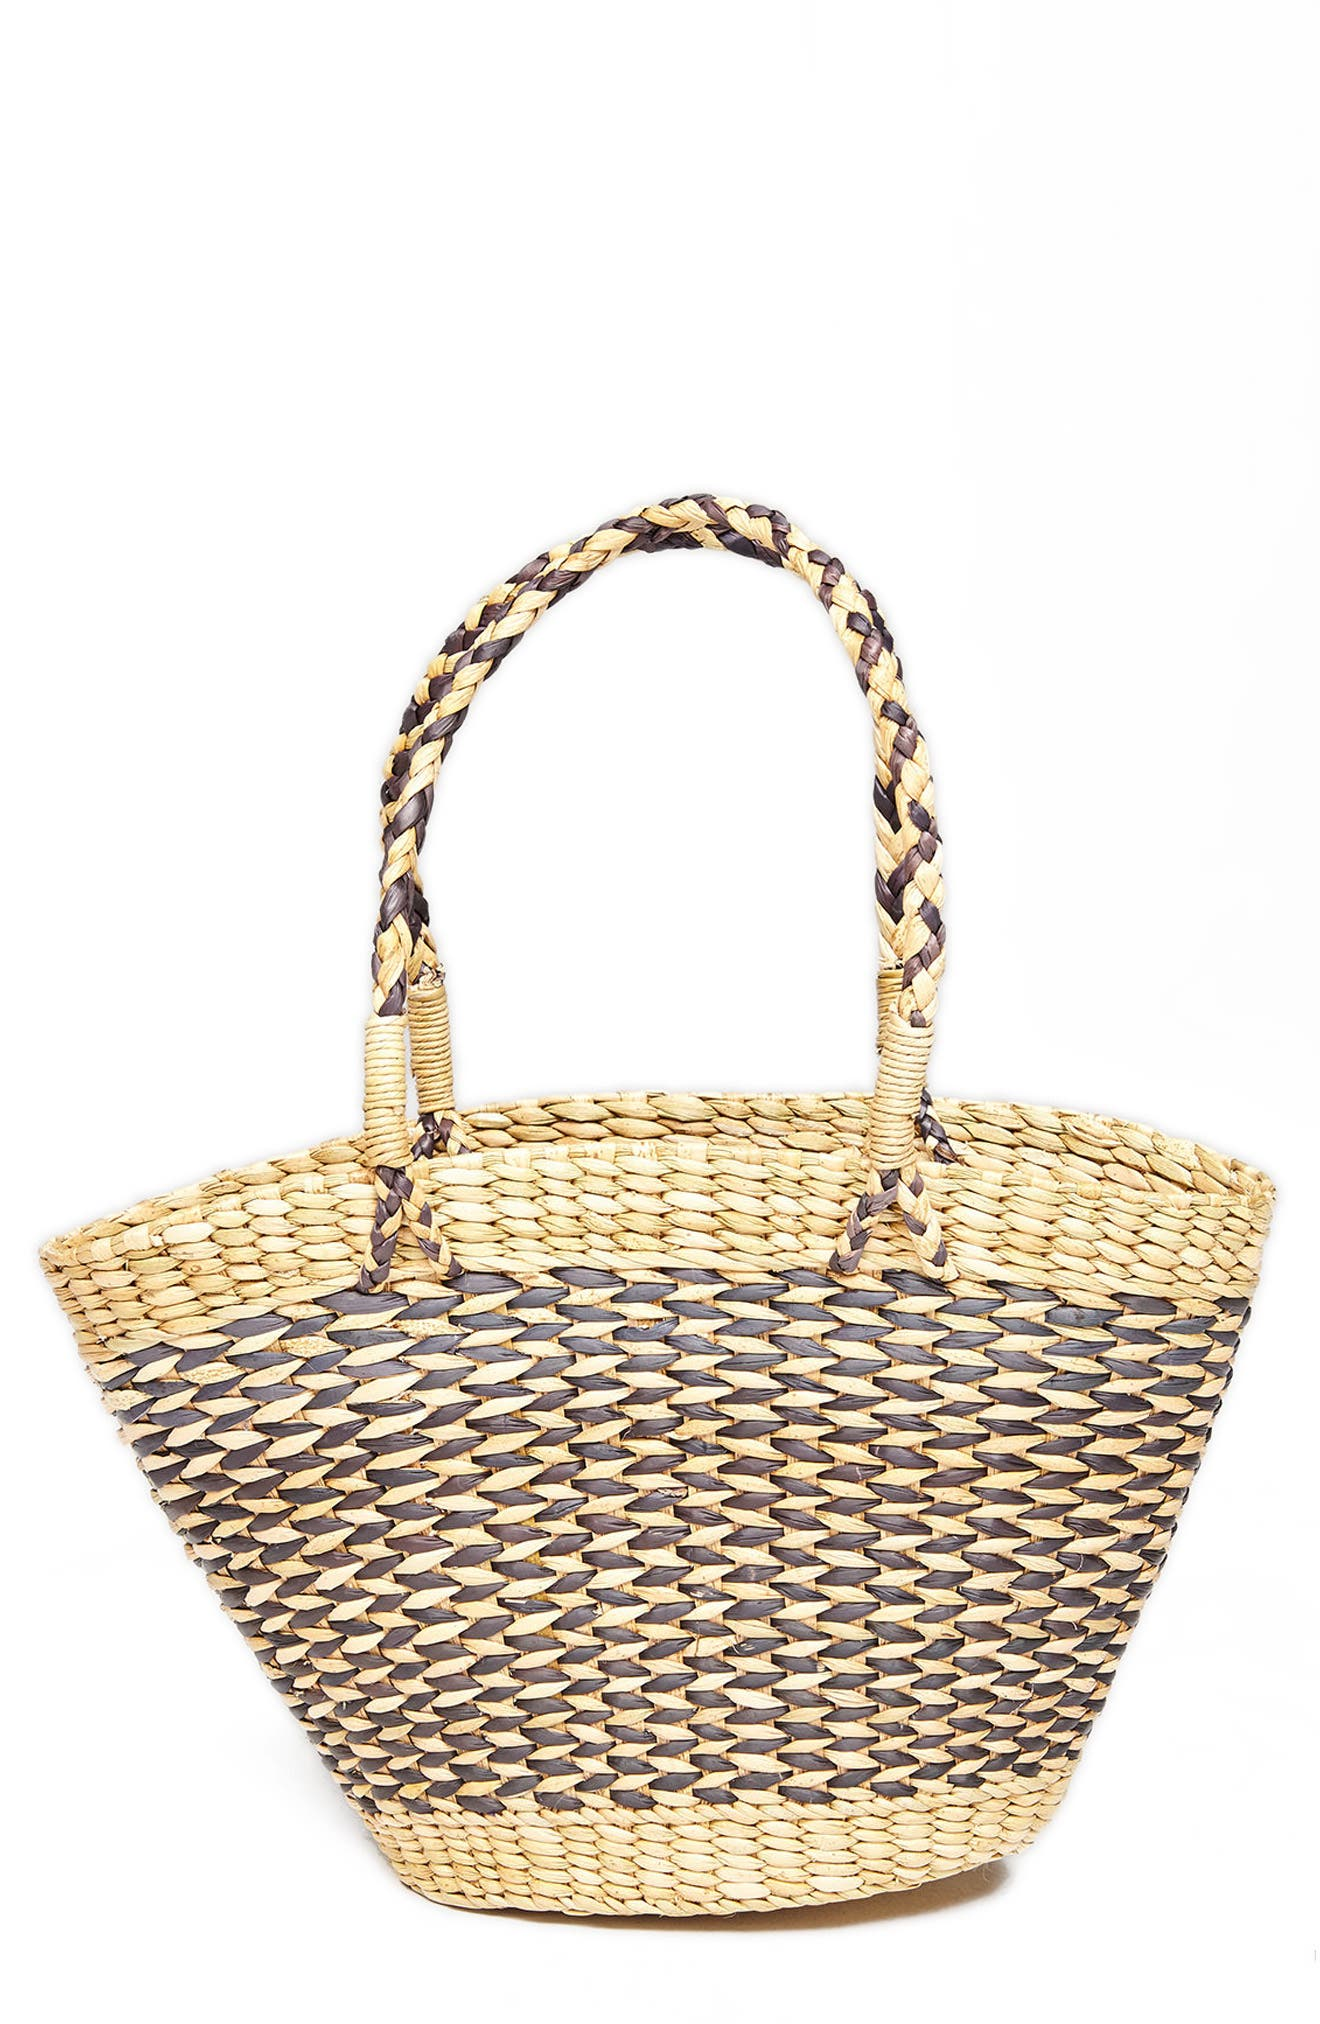 Goodie Basket Straw Tote,                         Main,                         color, Stripe